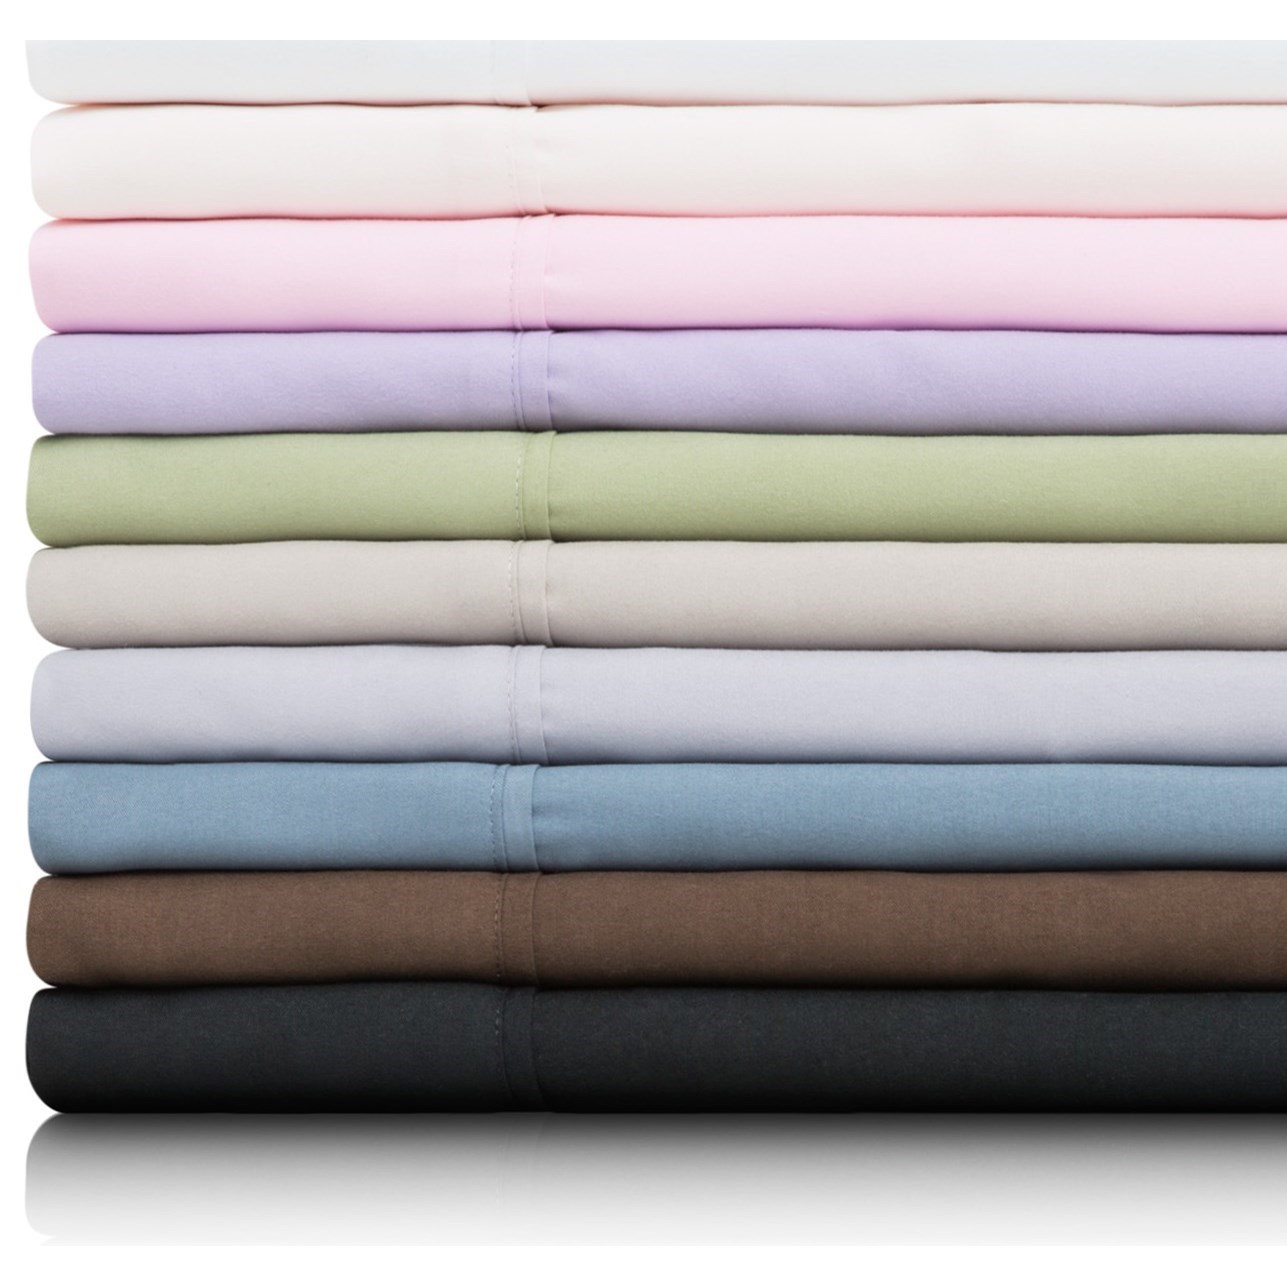 Malouf Brushed Microfiber Queen Woven™ Brushed Microfiber Pillowcases  - Item Number: MA90QQCHPC